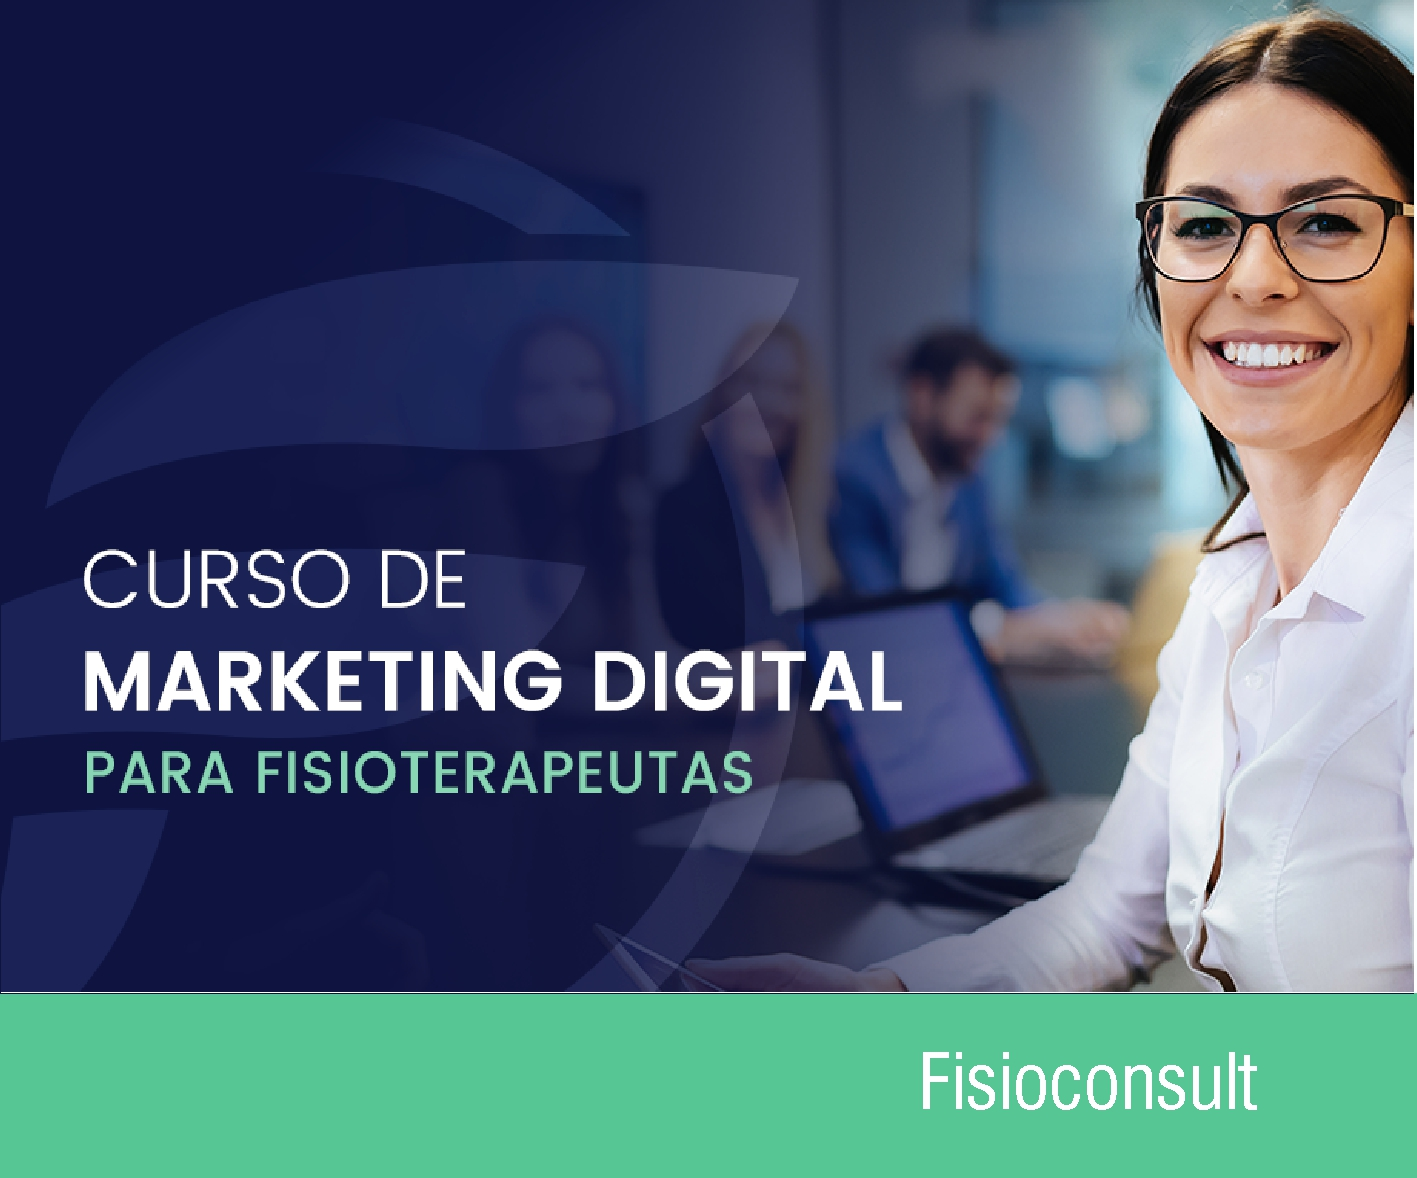 CURSO DE MARKETING PARA FISIOTERAPEUTAS